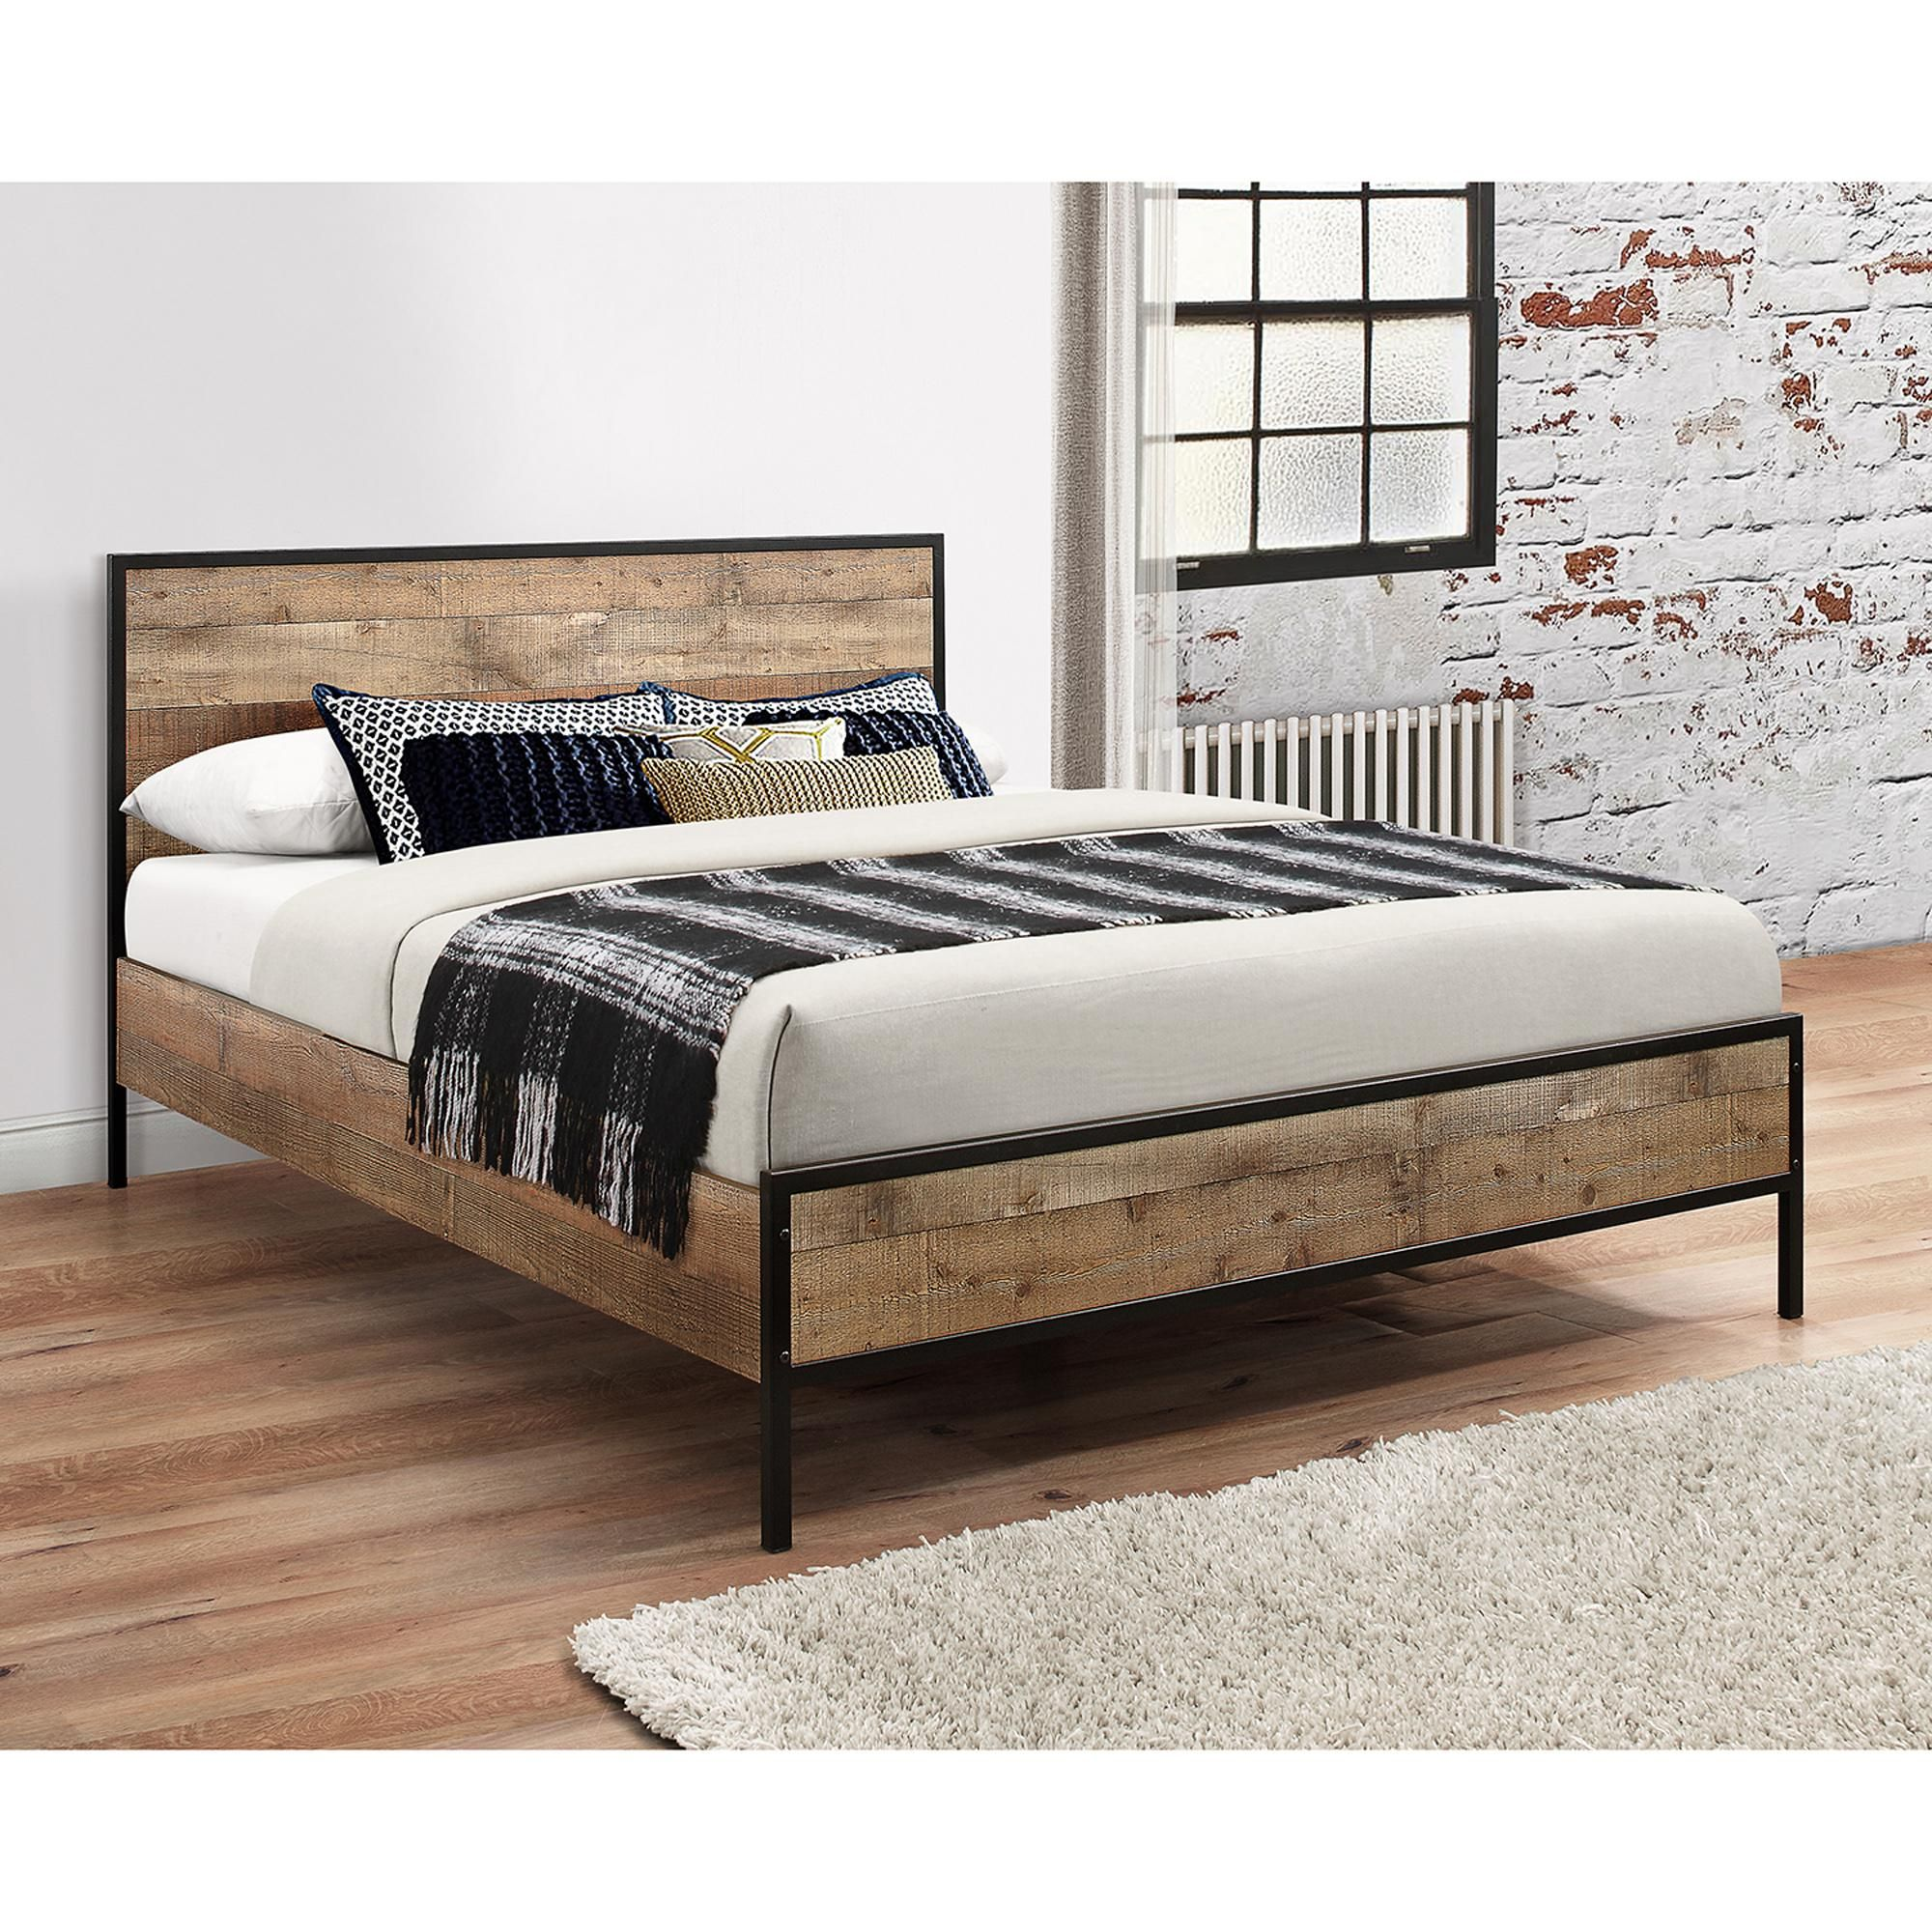 Urban Rustic Bed Frame In 2020 Rustic Wooden Bed Bed Frame